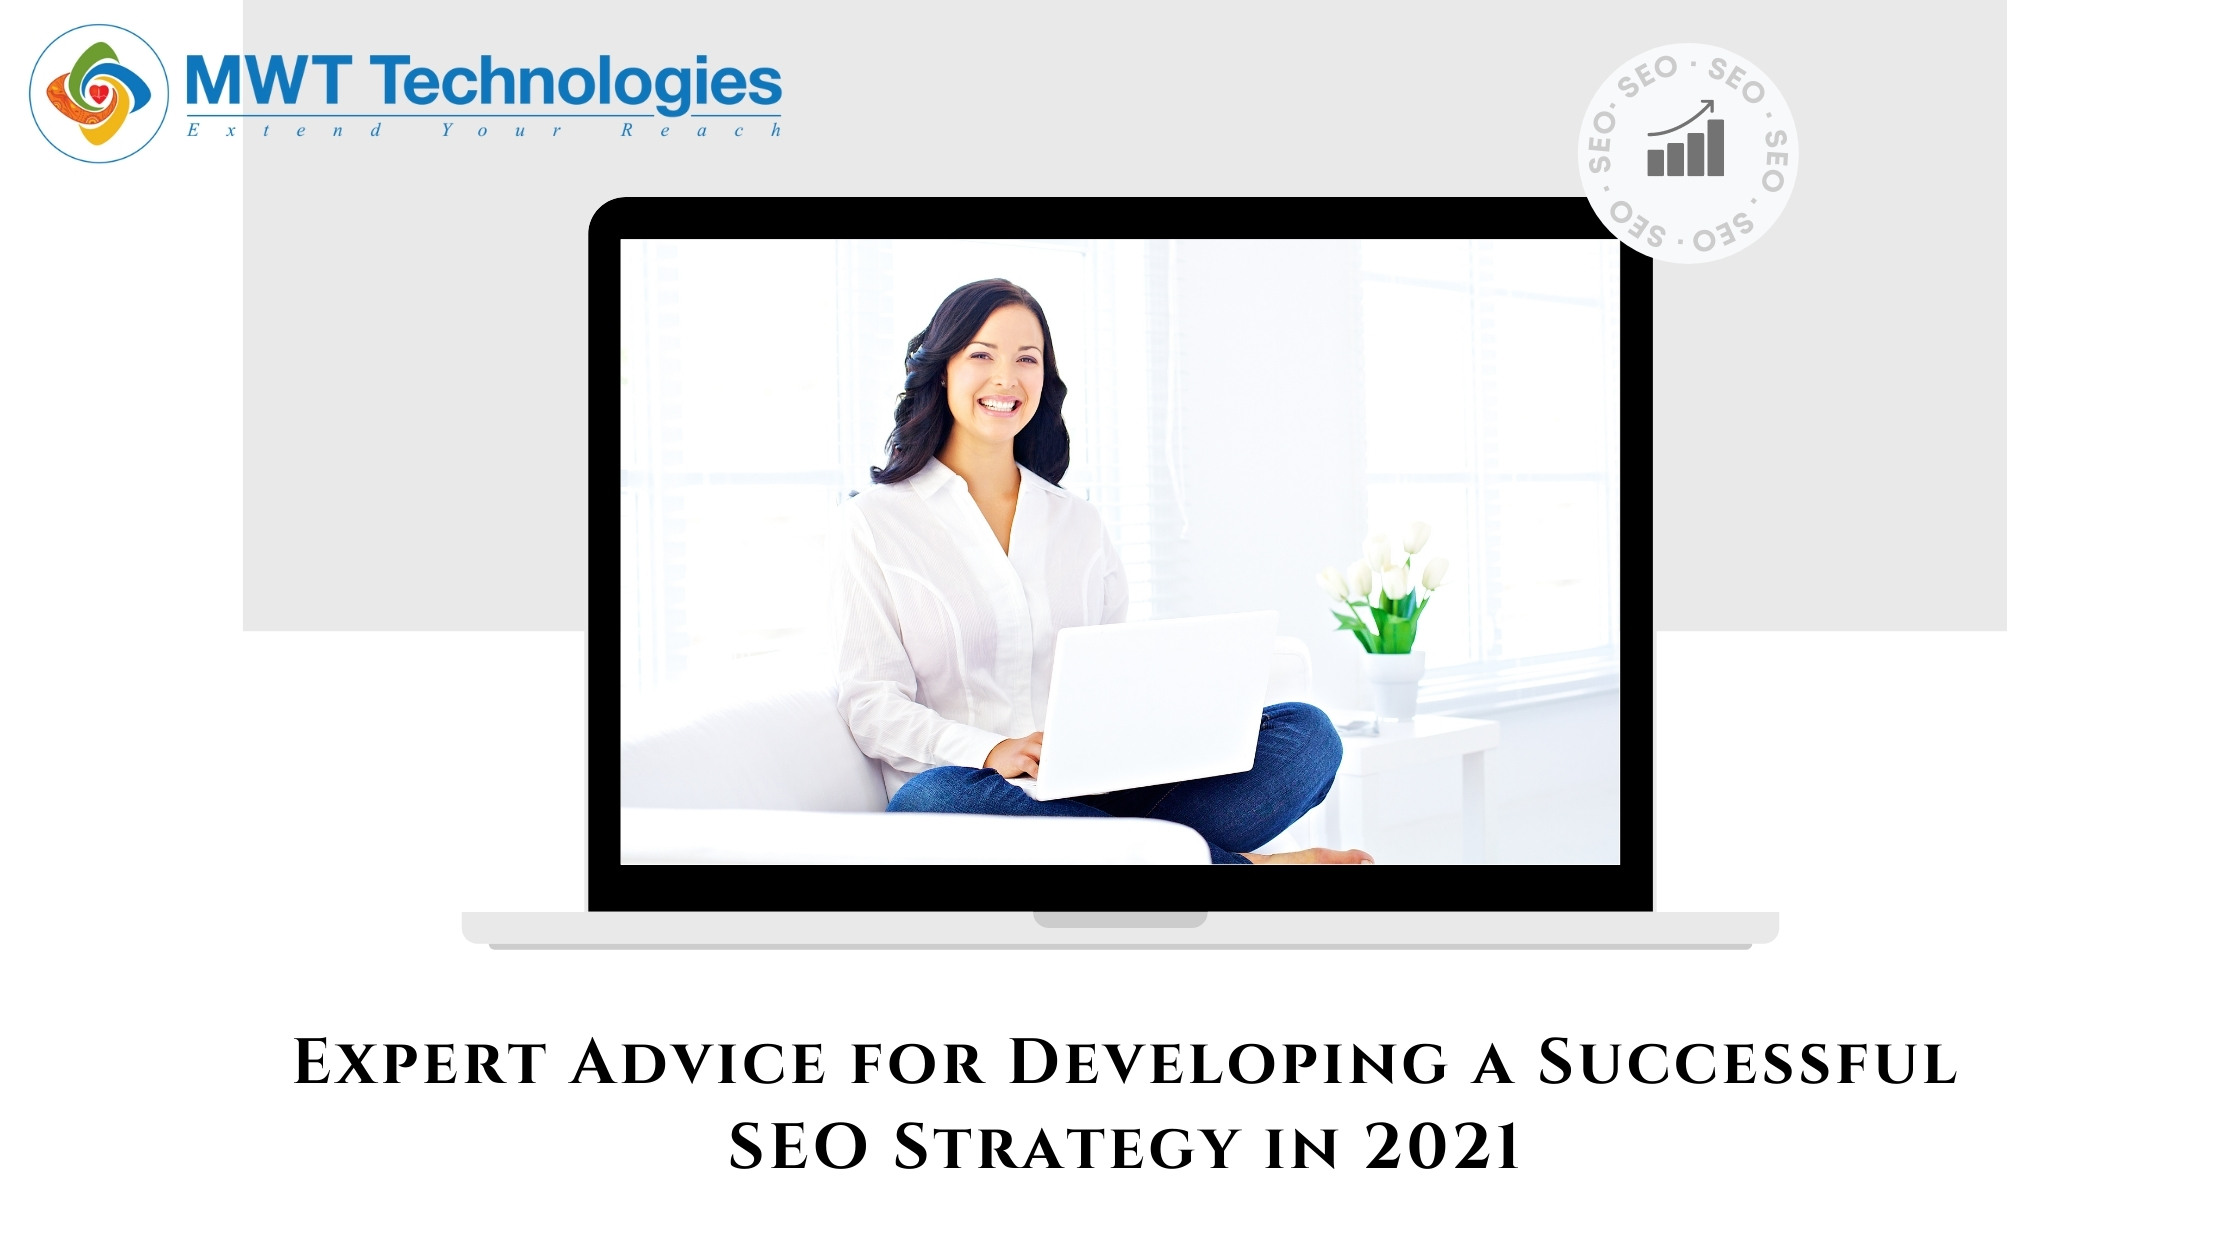 Expert Advice for Developing a Successful SEO Strategy in 2021